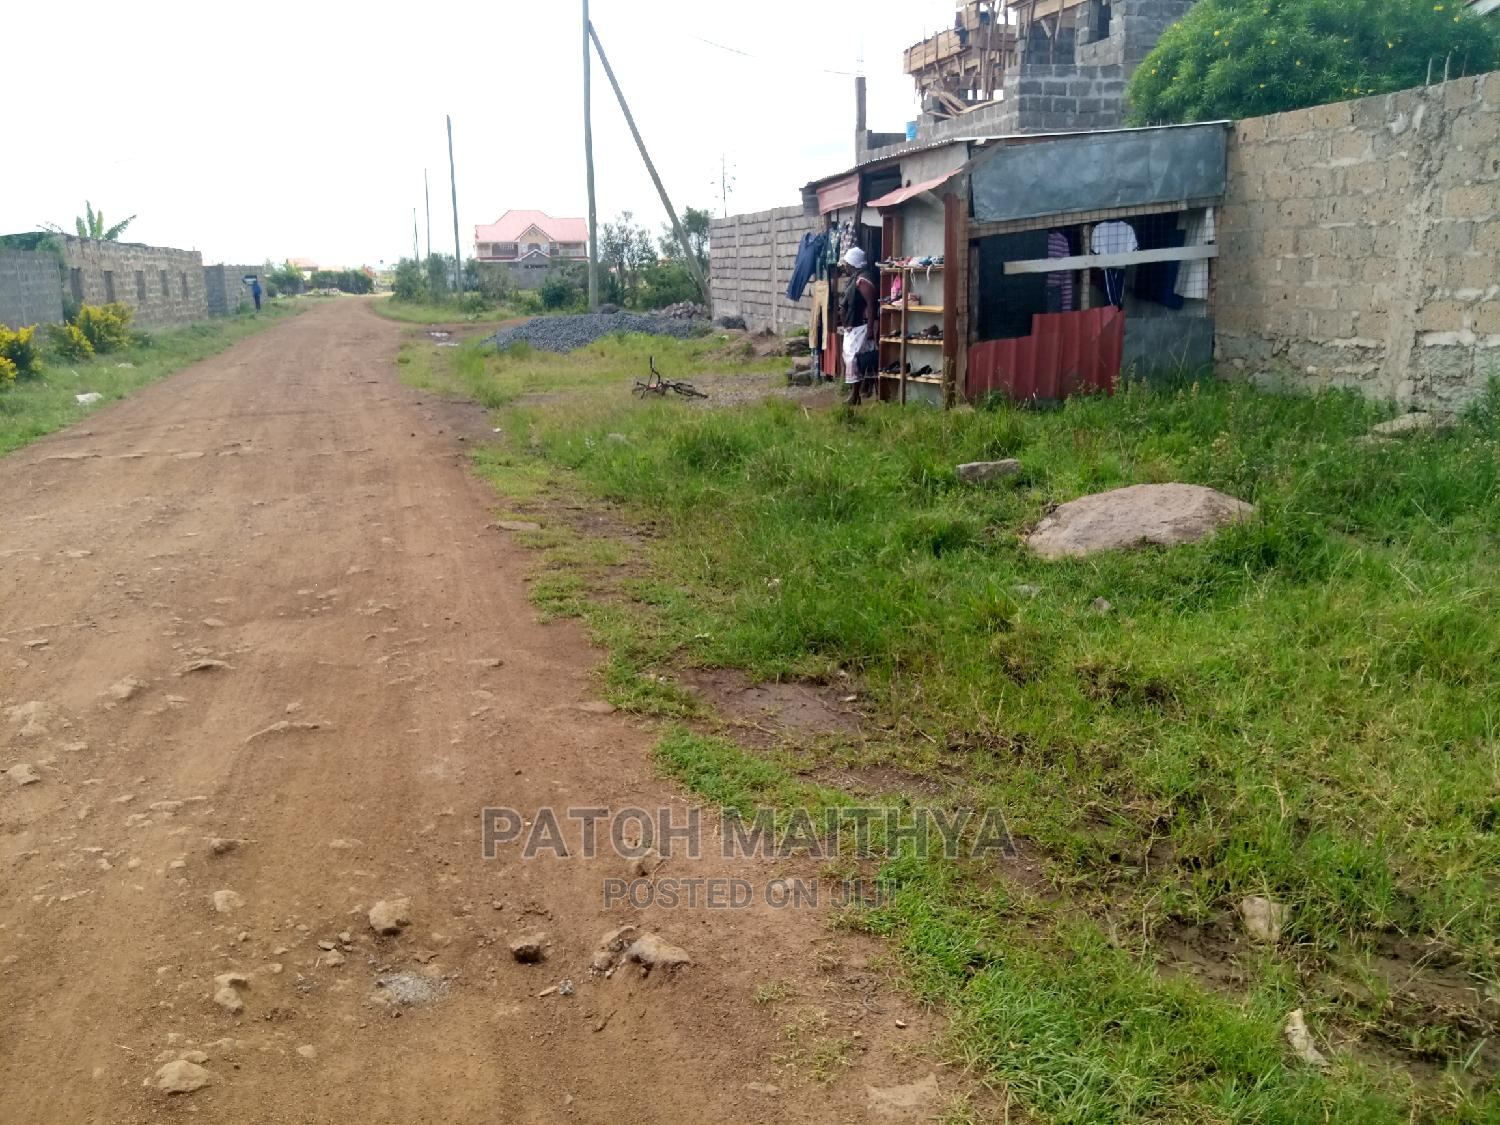 40×80plot With Building on It on Sale, | Commercial Property For Sale for sale in Kamakis, Ruiru, Kenya